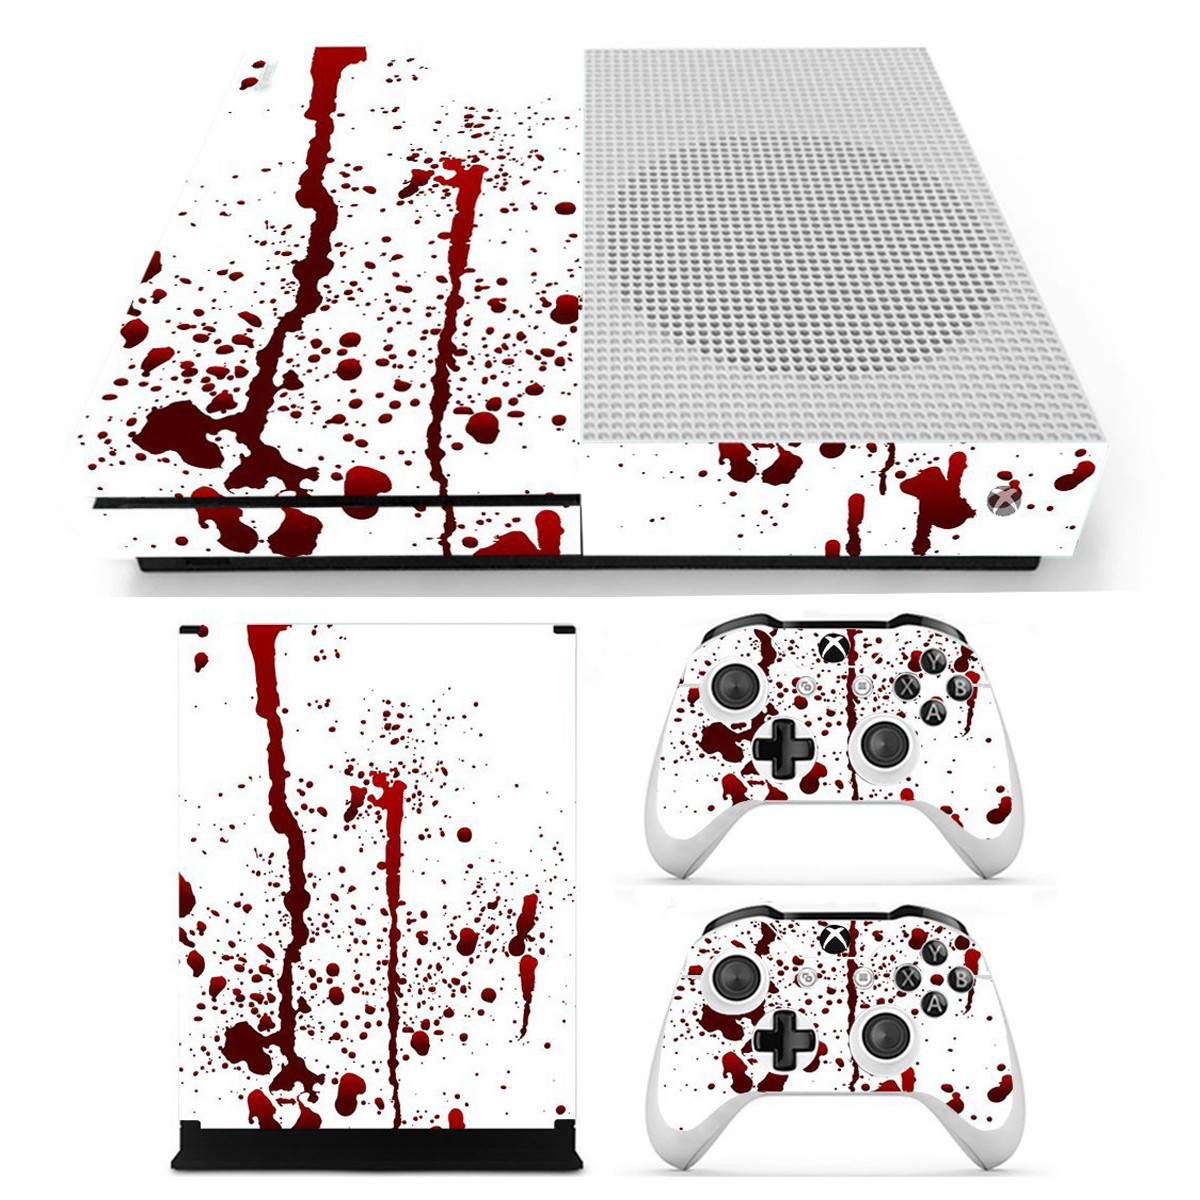 Bloody Skin Decals Stickers Cover for Xbox One S Game C